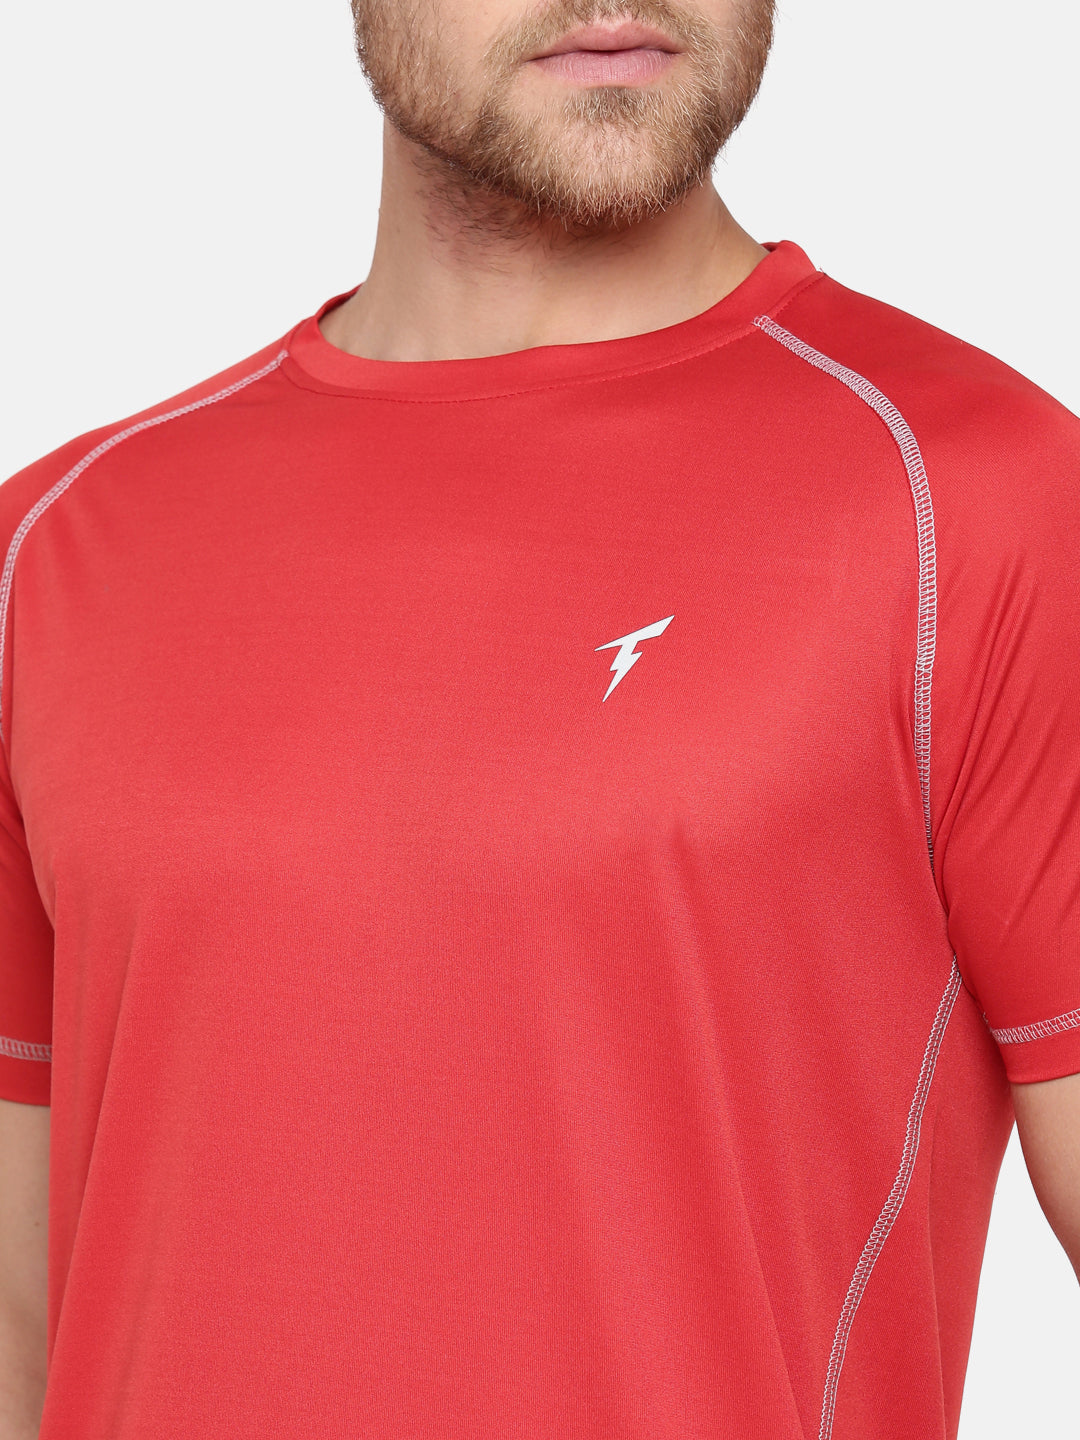 The Raglan Sleeve Athletic Tee - Red